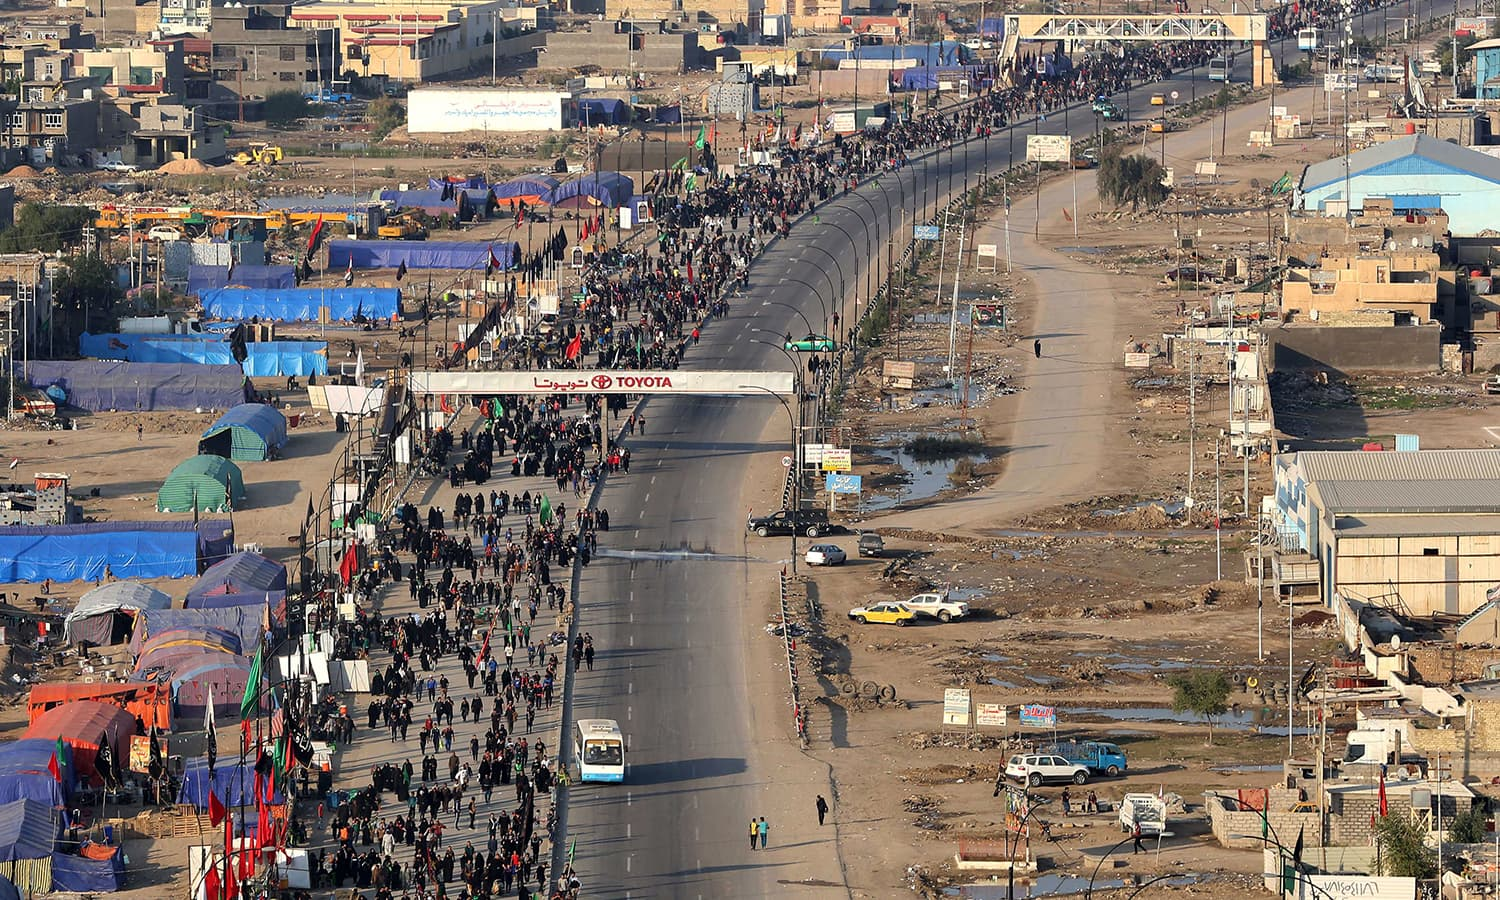 Shia pilgrims march to Karbala during the Arbaeen ritual in Baghdad, Iraq. The total number of pilgrims who have visited Karbala is more than 22 million.  —AP